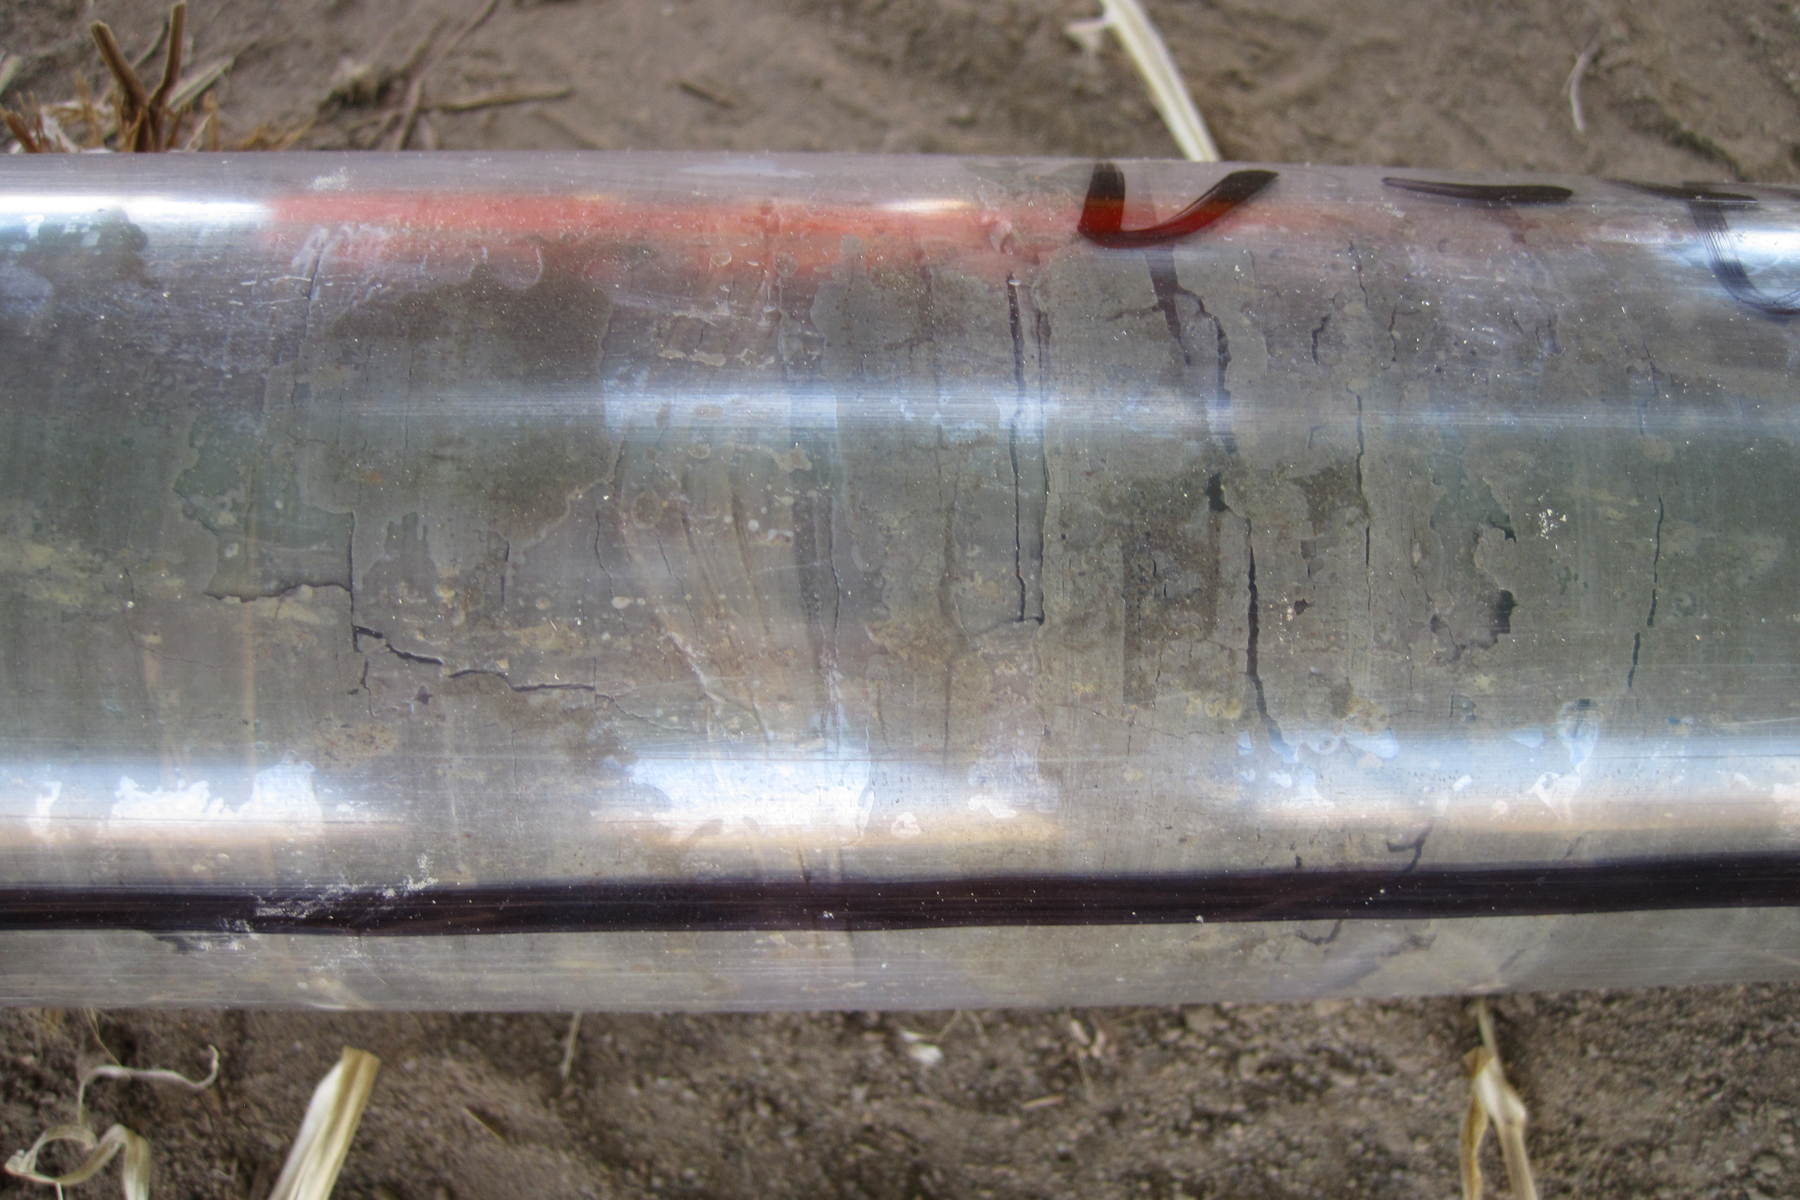 close up view of a clear plastic tube containing banded layers of sediment core